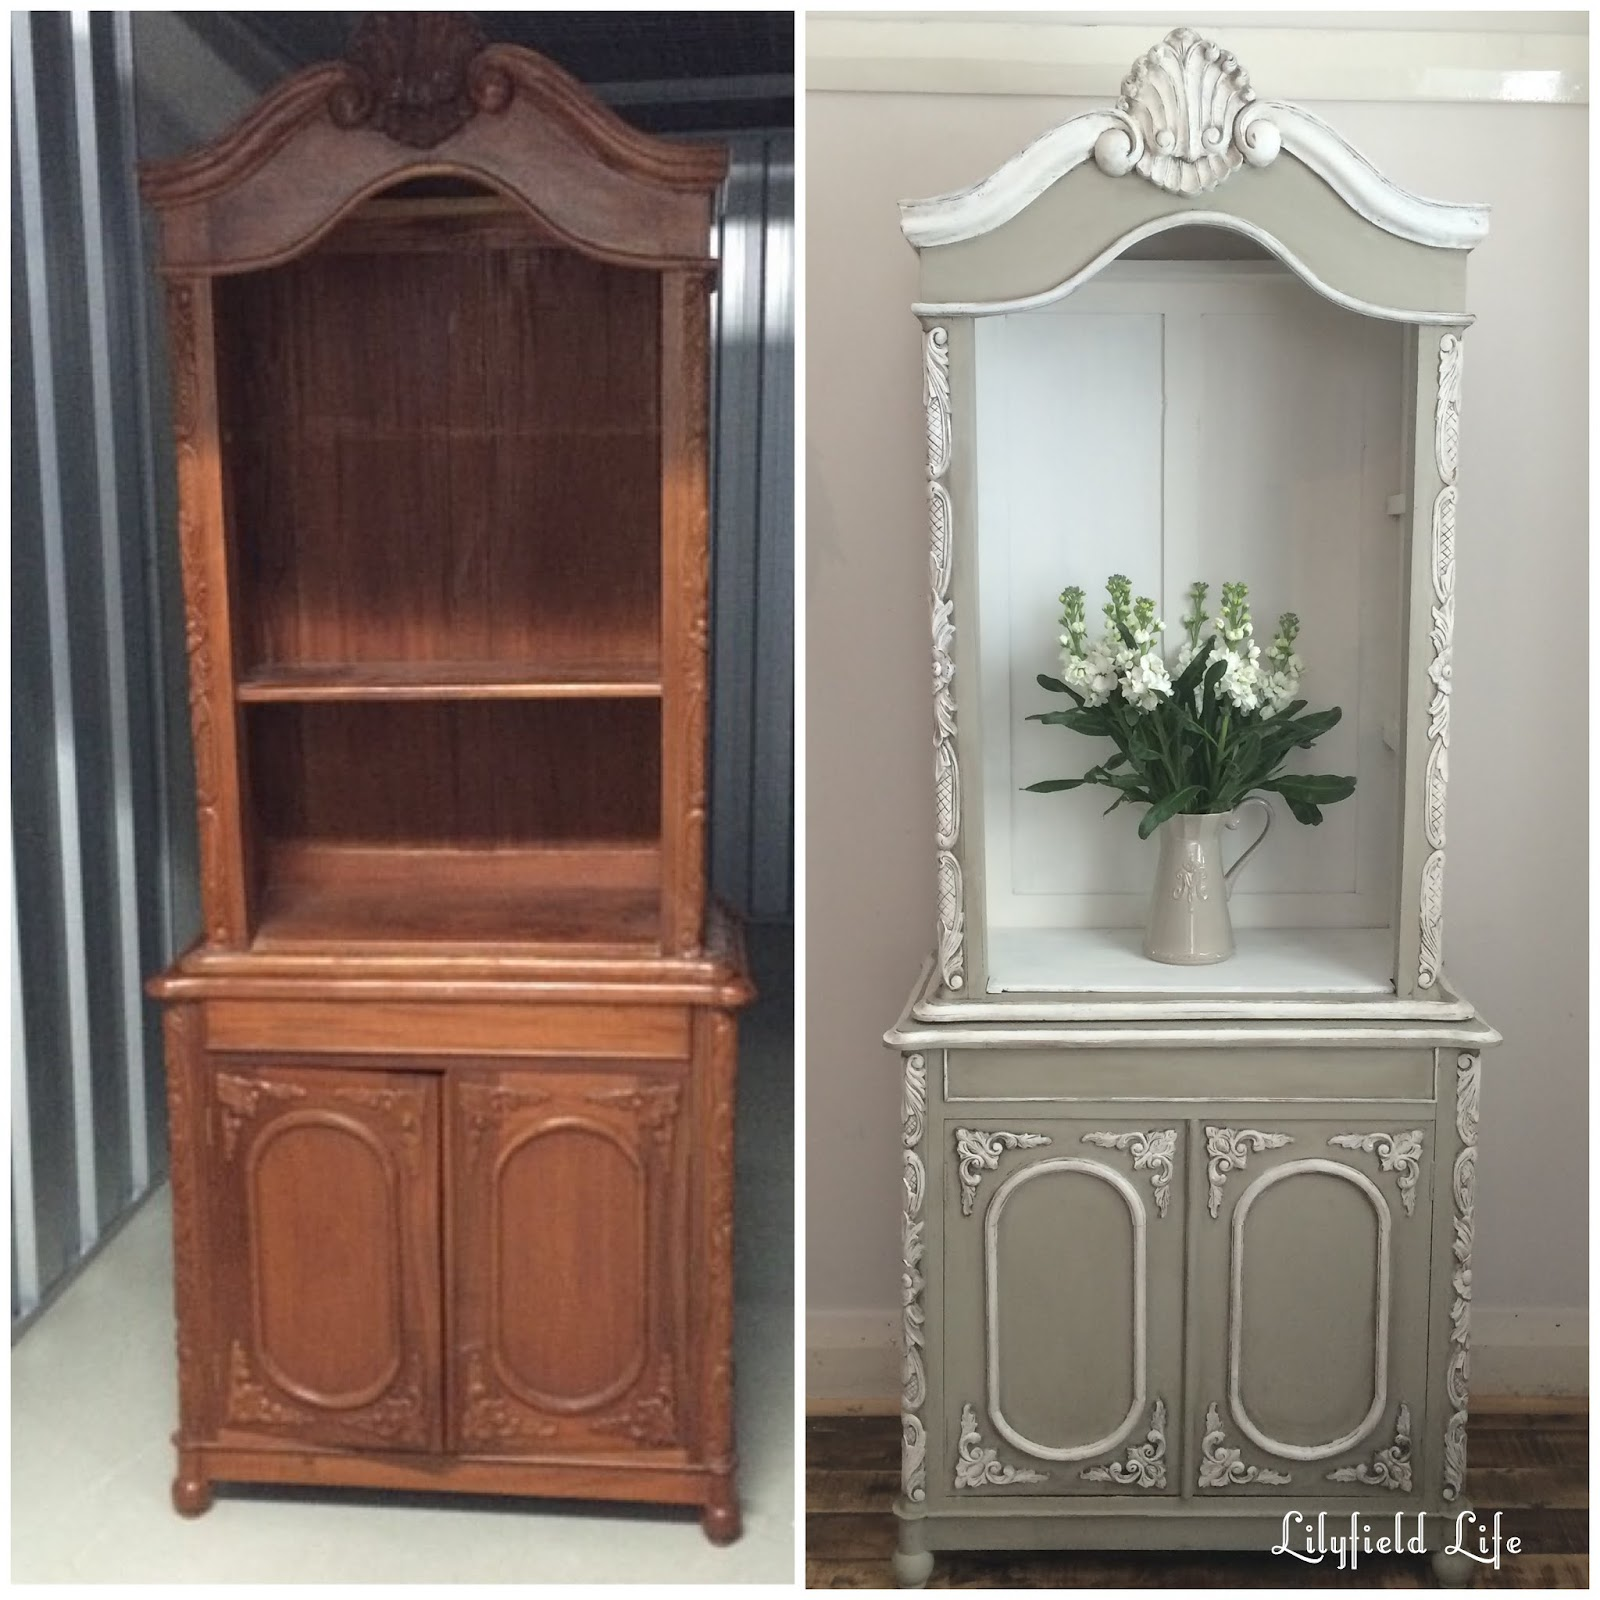 Annie Sloan Chalk Paint For Kitchen Cabinets Lilyfield Life Before And After Hand Painted French